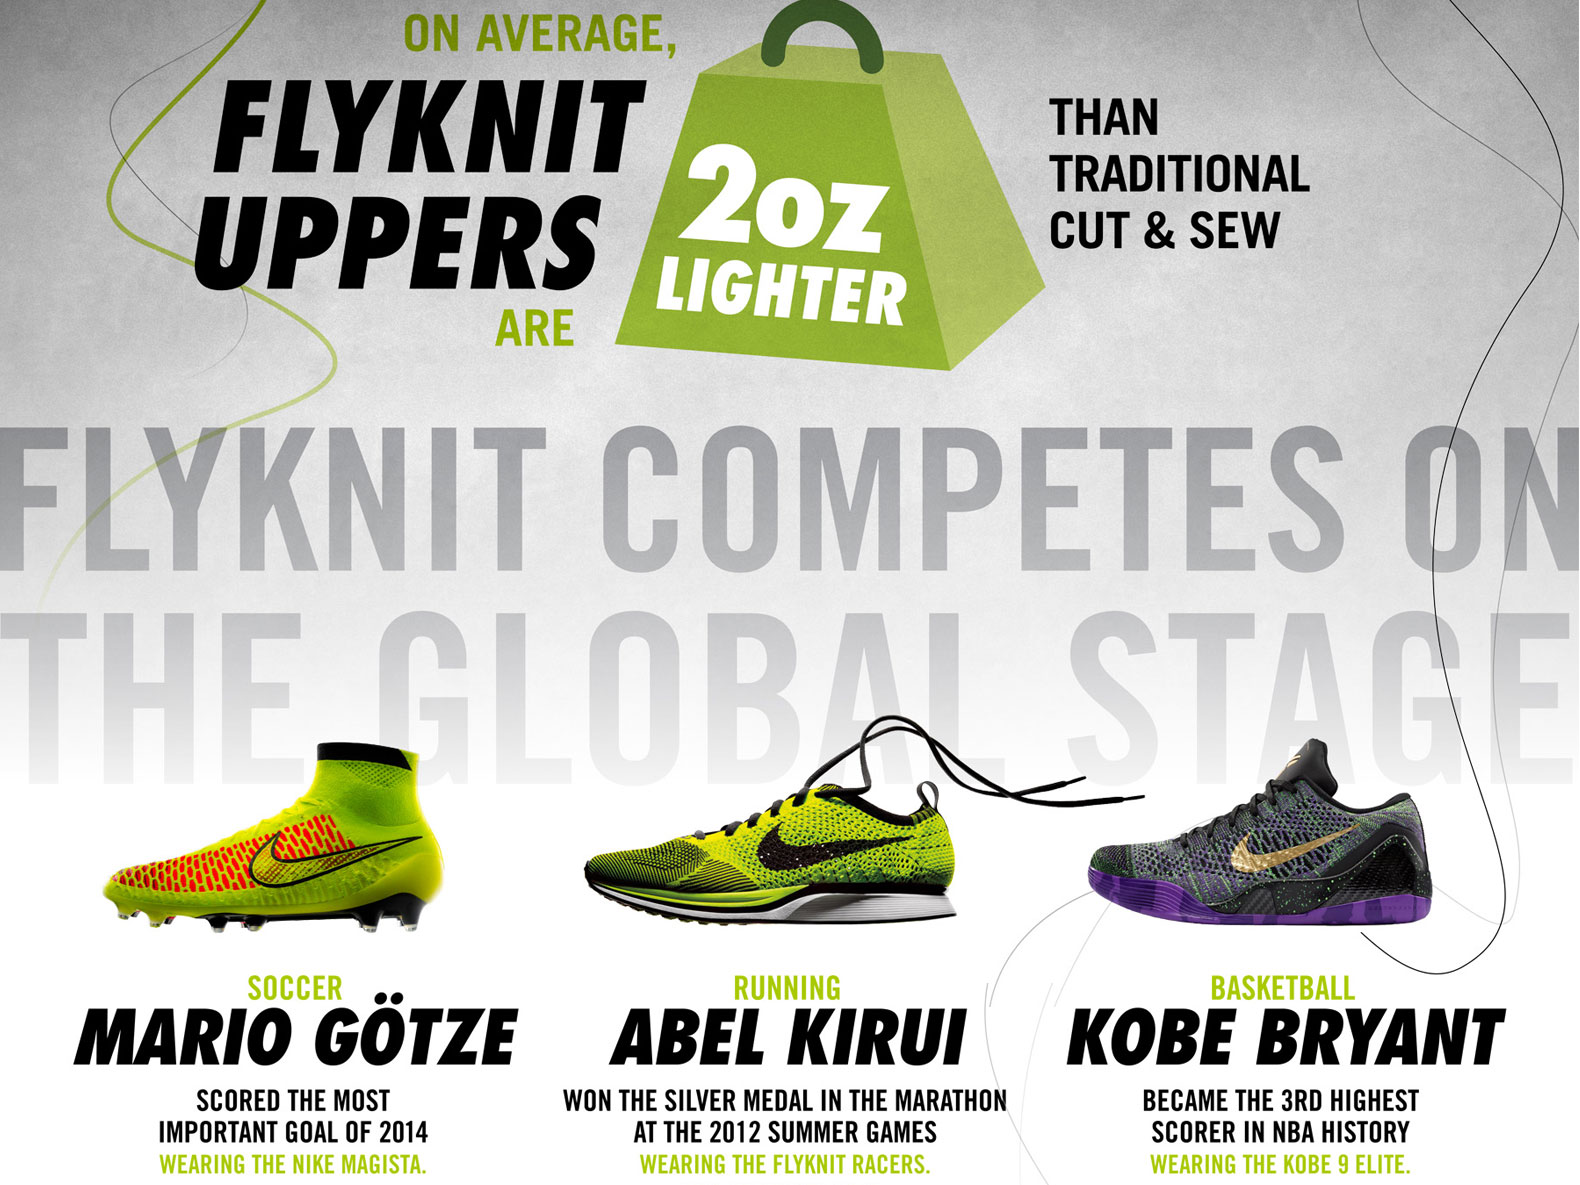 Nike Celebrates Four Years of Flyknit, Now Uses Recycled Polyester